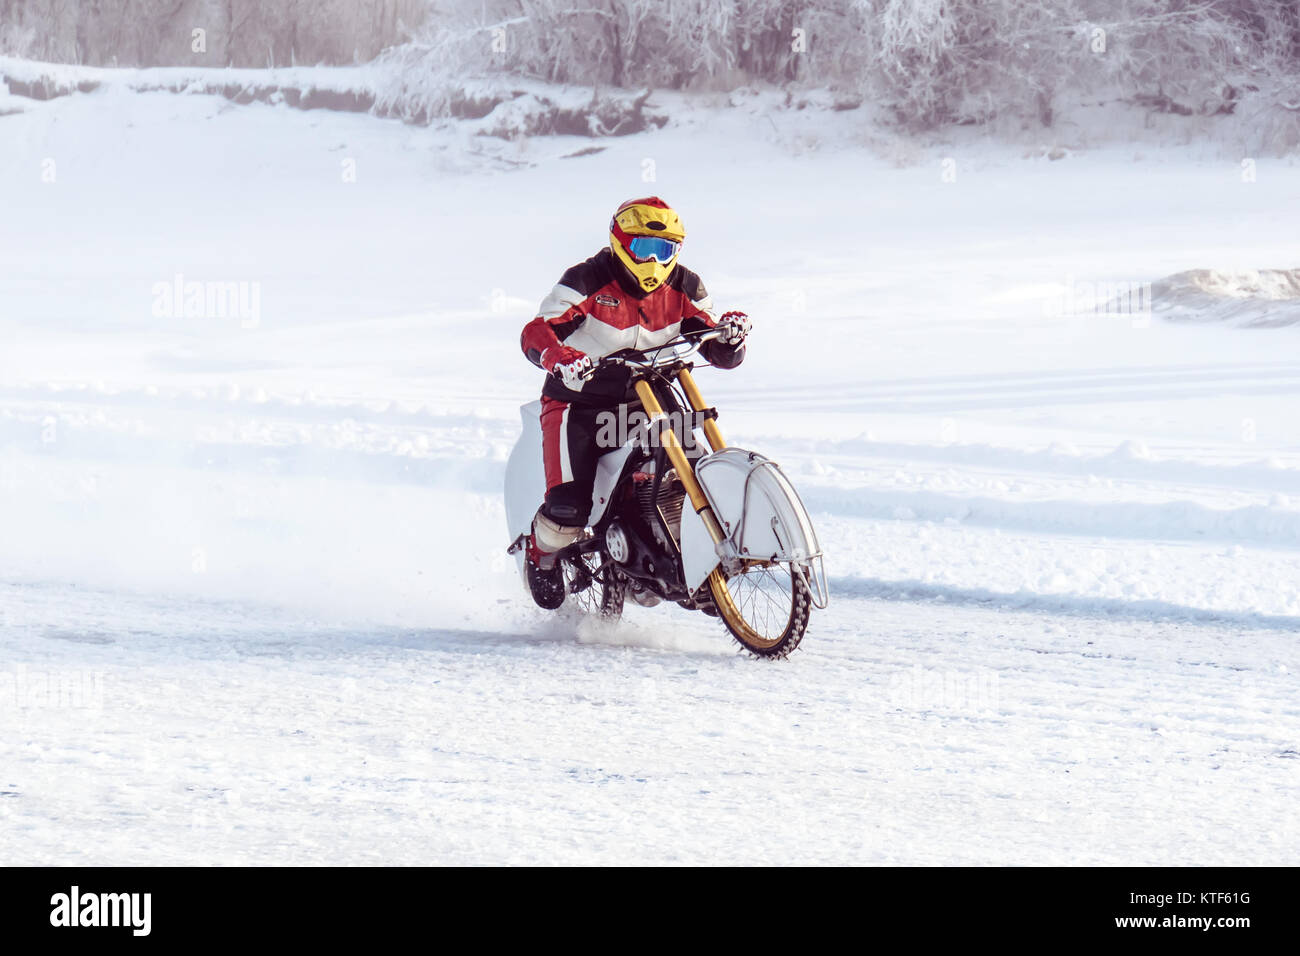 Motorcycle On Studded Tires Winter Speedway Extreme Bike Race In